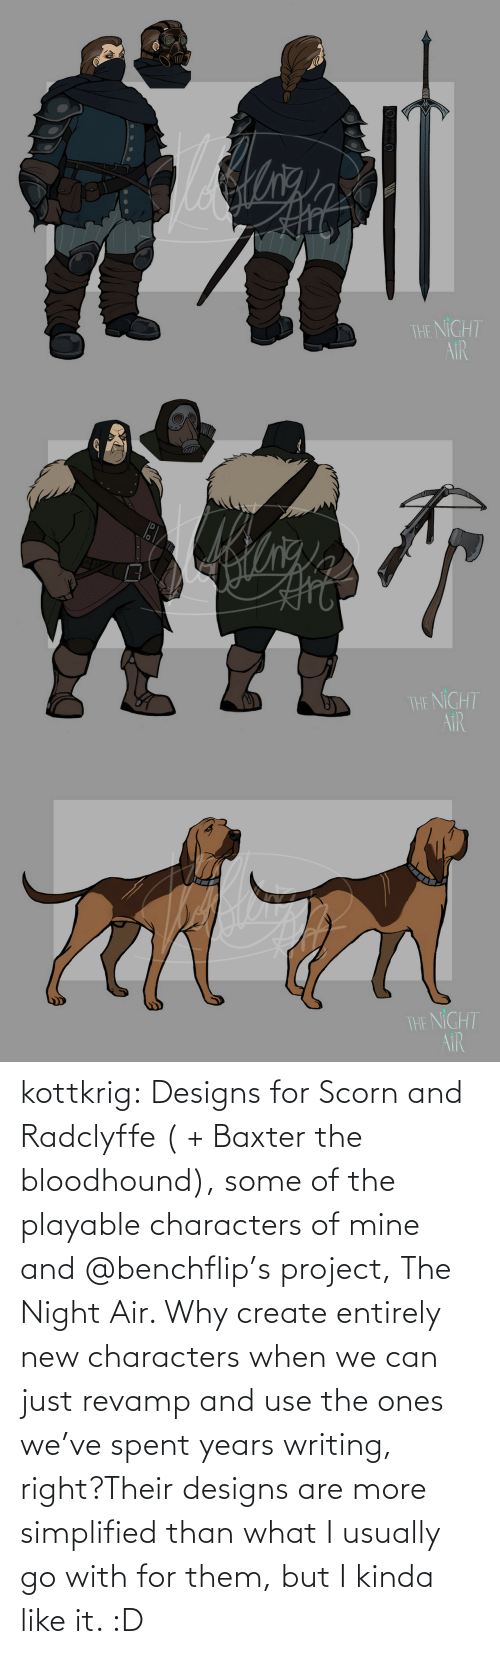 project: kottkrig:  Designs for Scorn and Radclyffe ( + Baxter the bloodhound), some of the playable characters of mine and @benchflip's project, The Night Air. Why create entirely new characters when we can just revamp and use the ones we've spent years writing, right?Their designs are more simplified than what I usually go with for them, but I kinda like it. :D